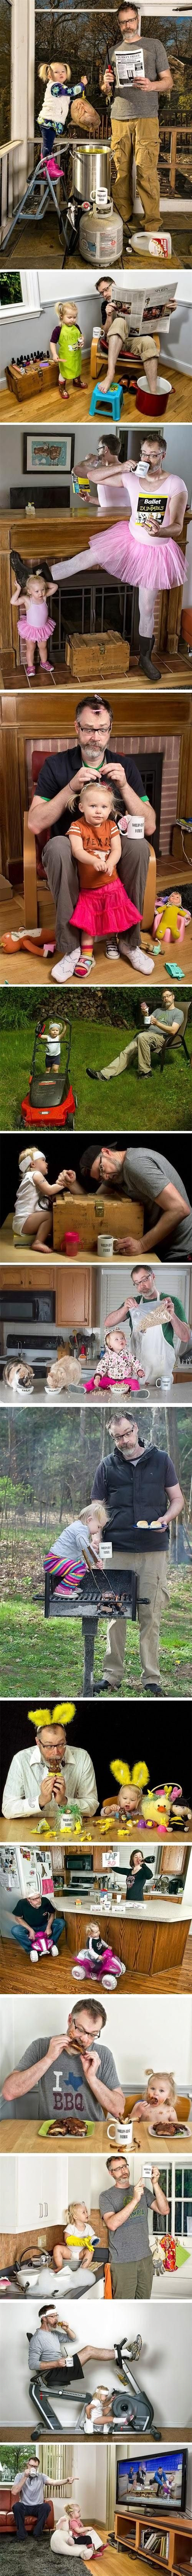 love this. awesome dad.